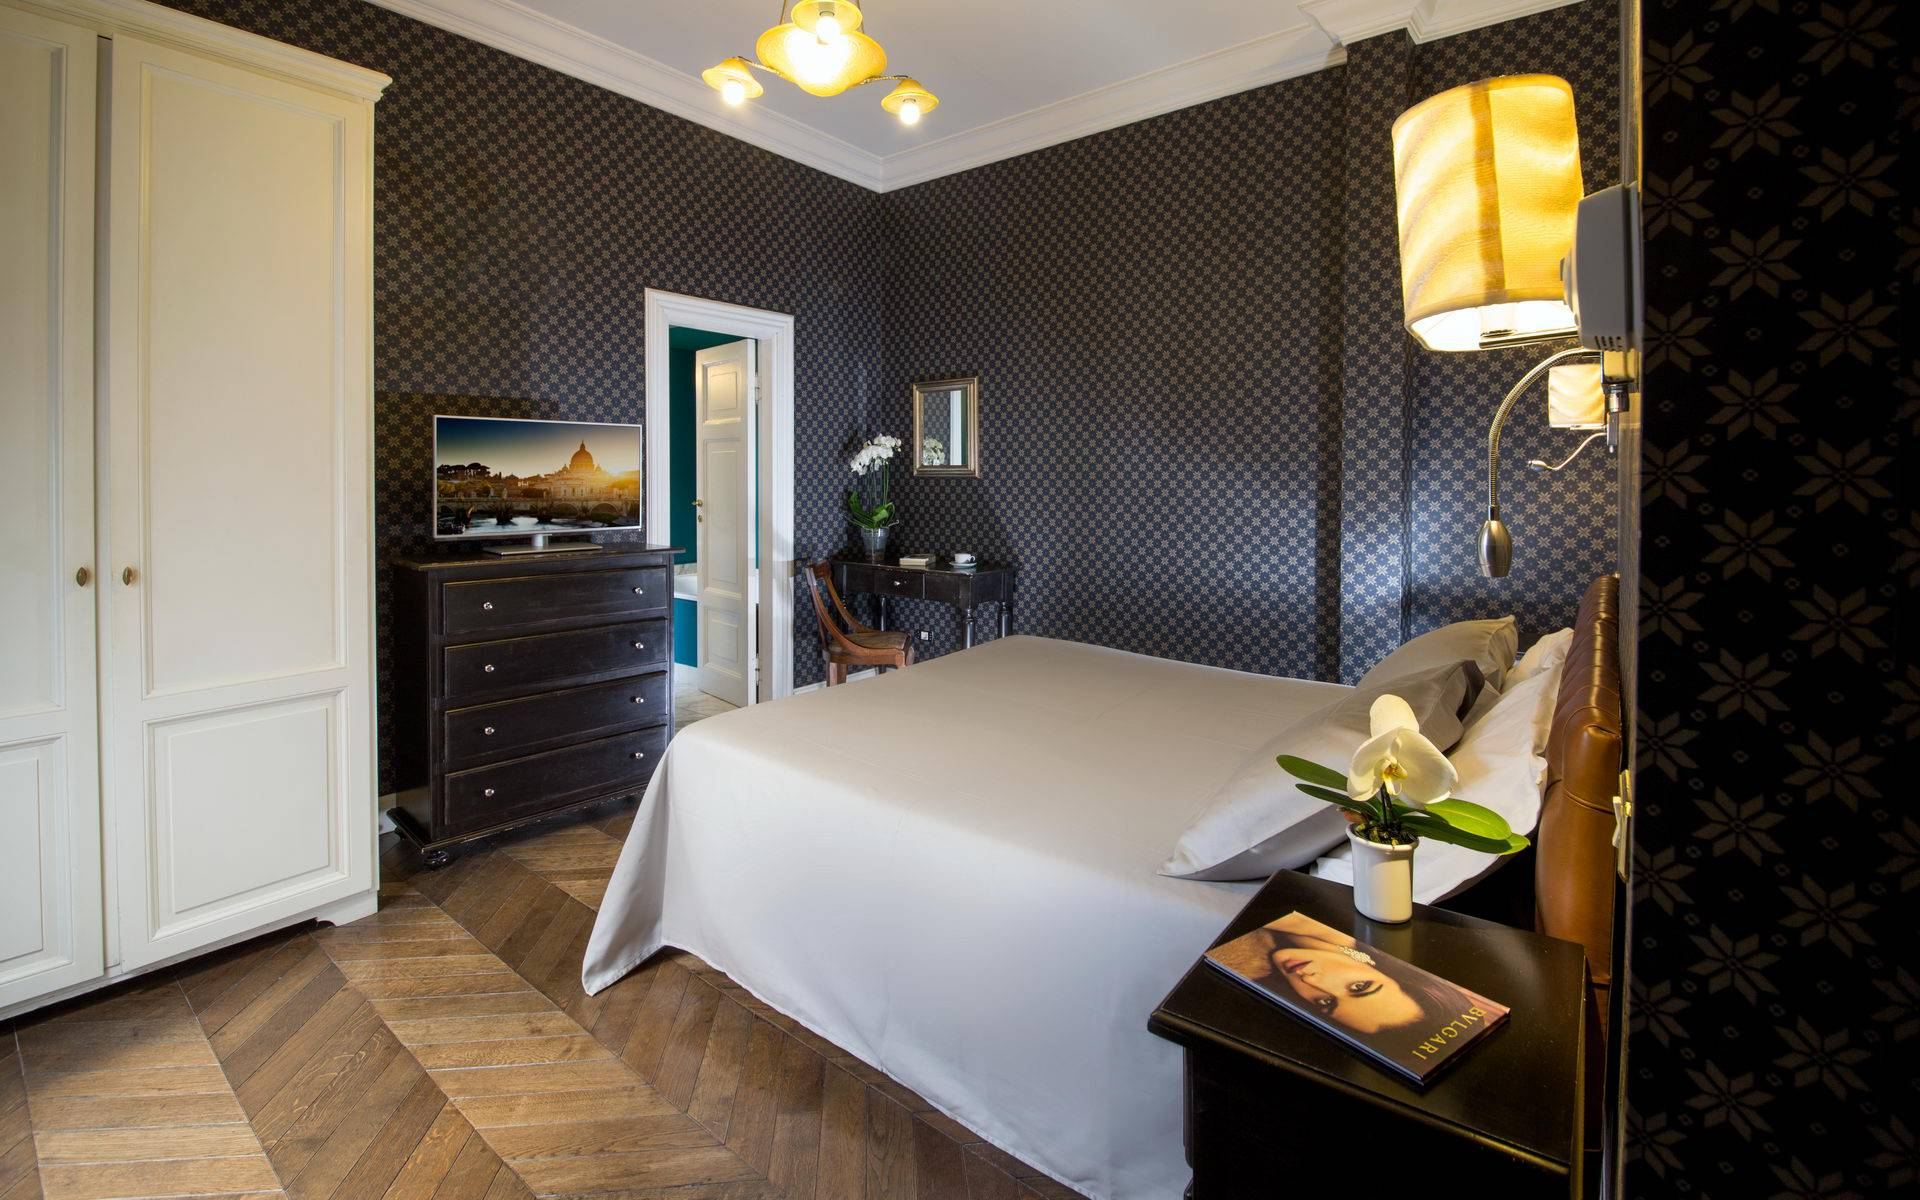 hotels-historic-centre-rome-boutique-hotel-anahi-camere-07-2